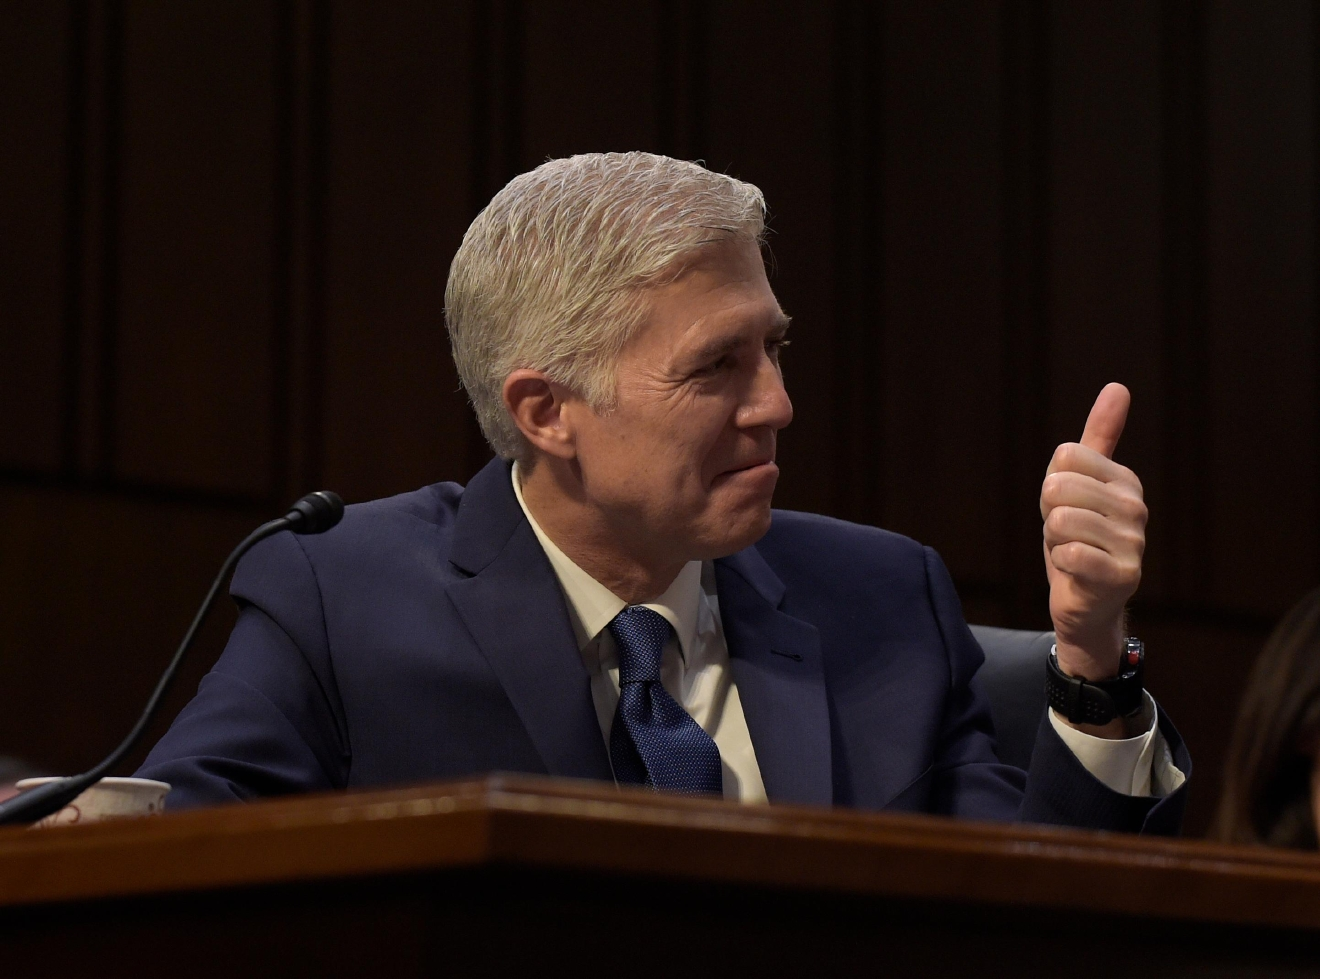 Supreme Court Justice nominee Neil Gorsuch gives a thumbs-up when asked how he is doing as he listens to opening statements on Capitol Hill in Washington, Monday, March 20, 2017, during his confirmation hearing before the Senate Judiciary Committee. (AP Photo/Susan Walsh)